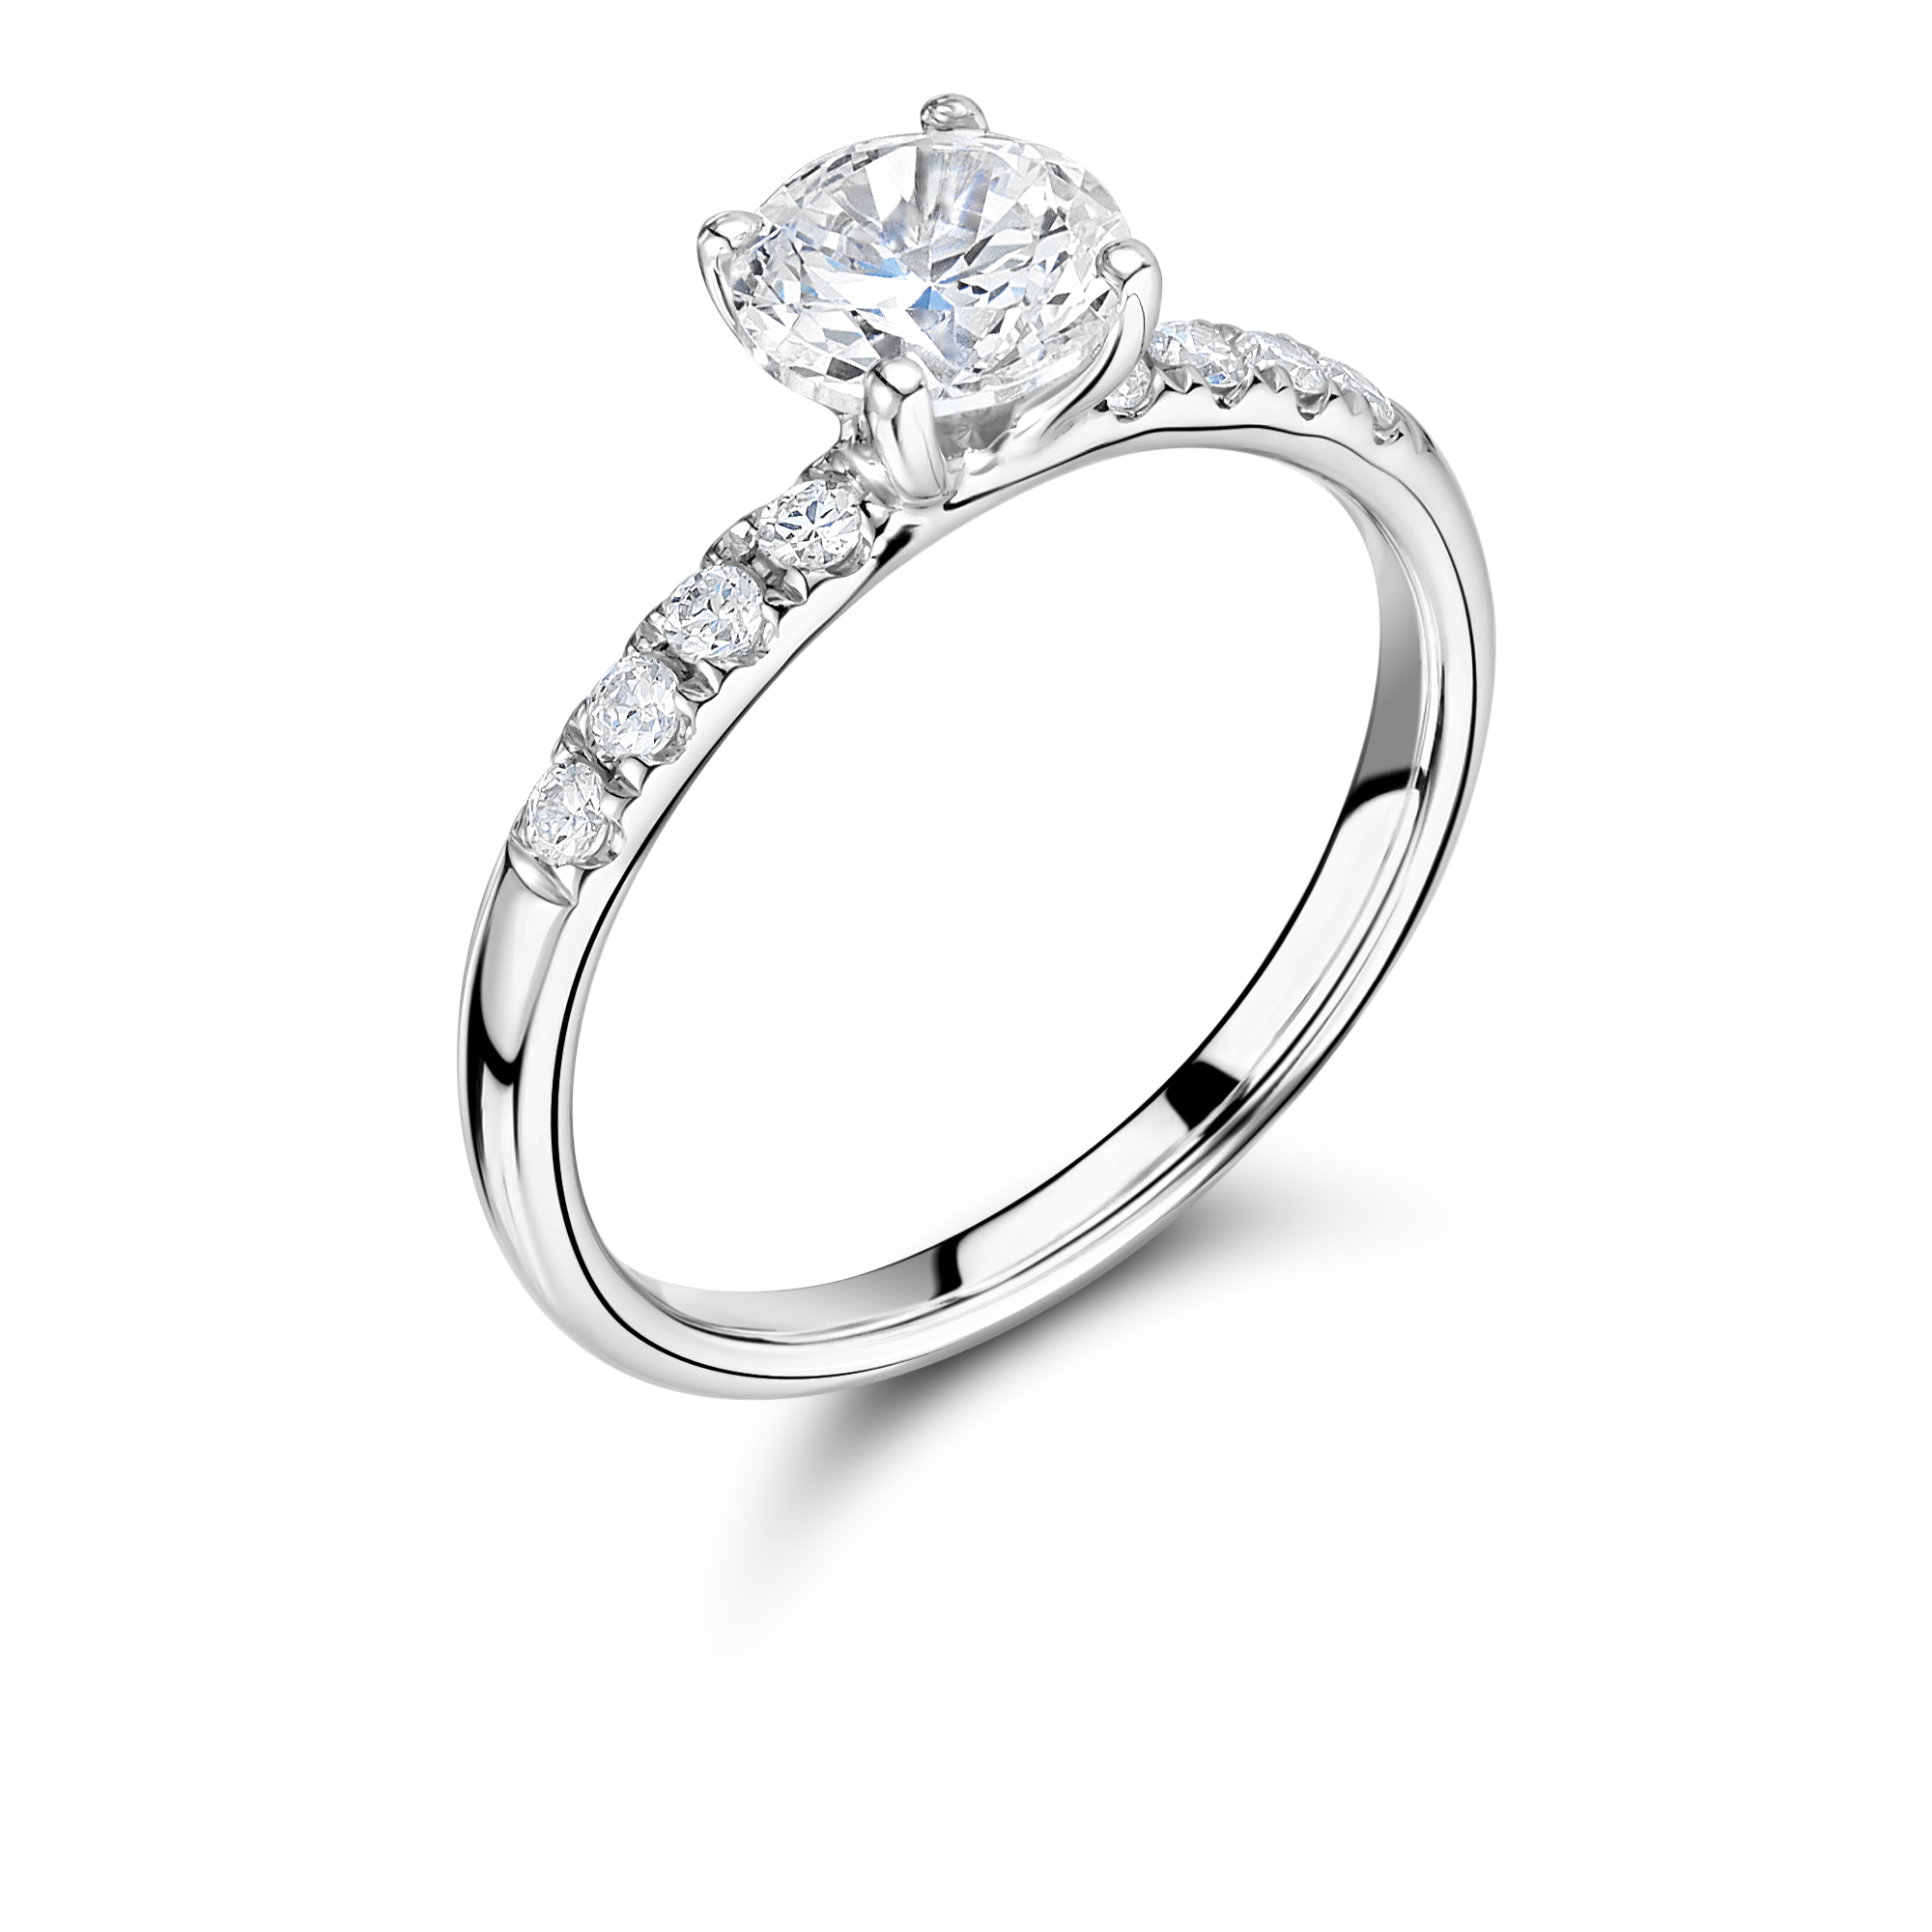 denzel platinium engagement polished diamond solitaire rings ring henrich brilliant cut band round platinum products